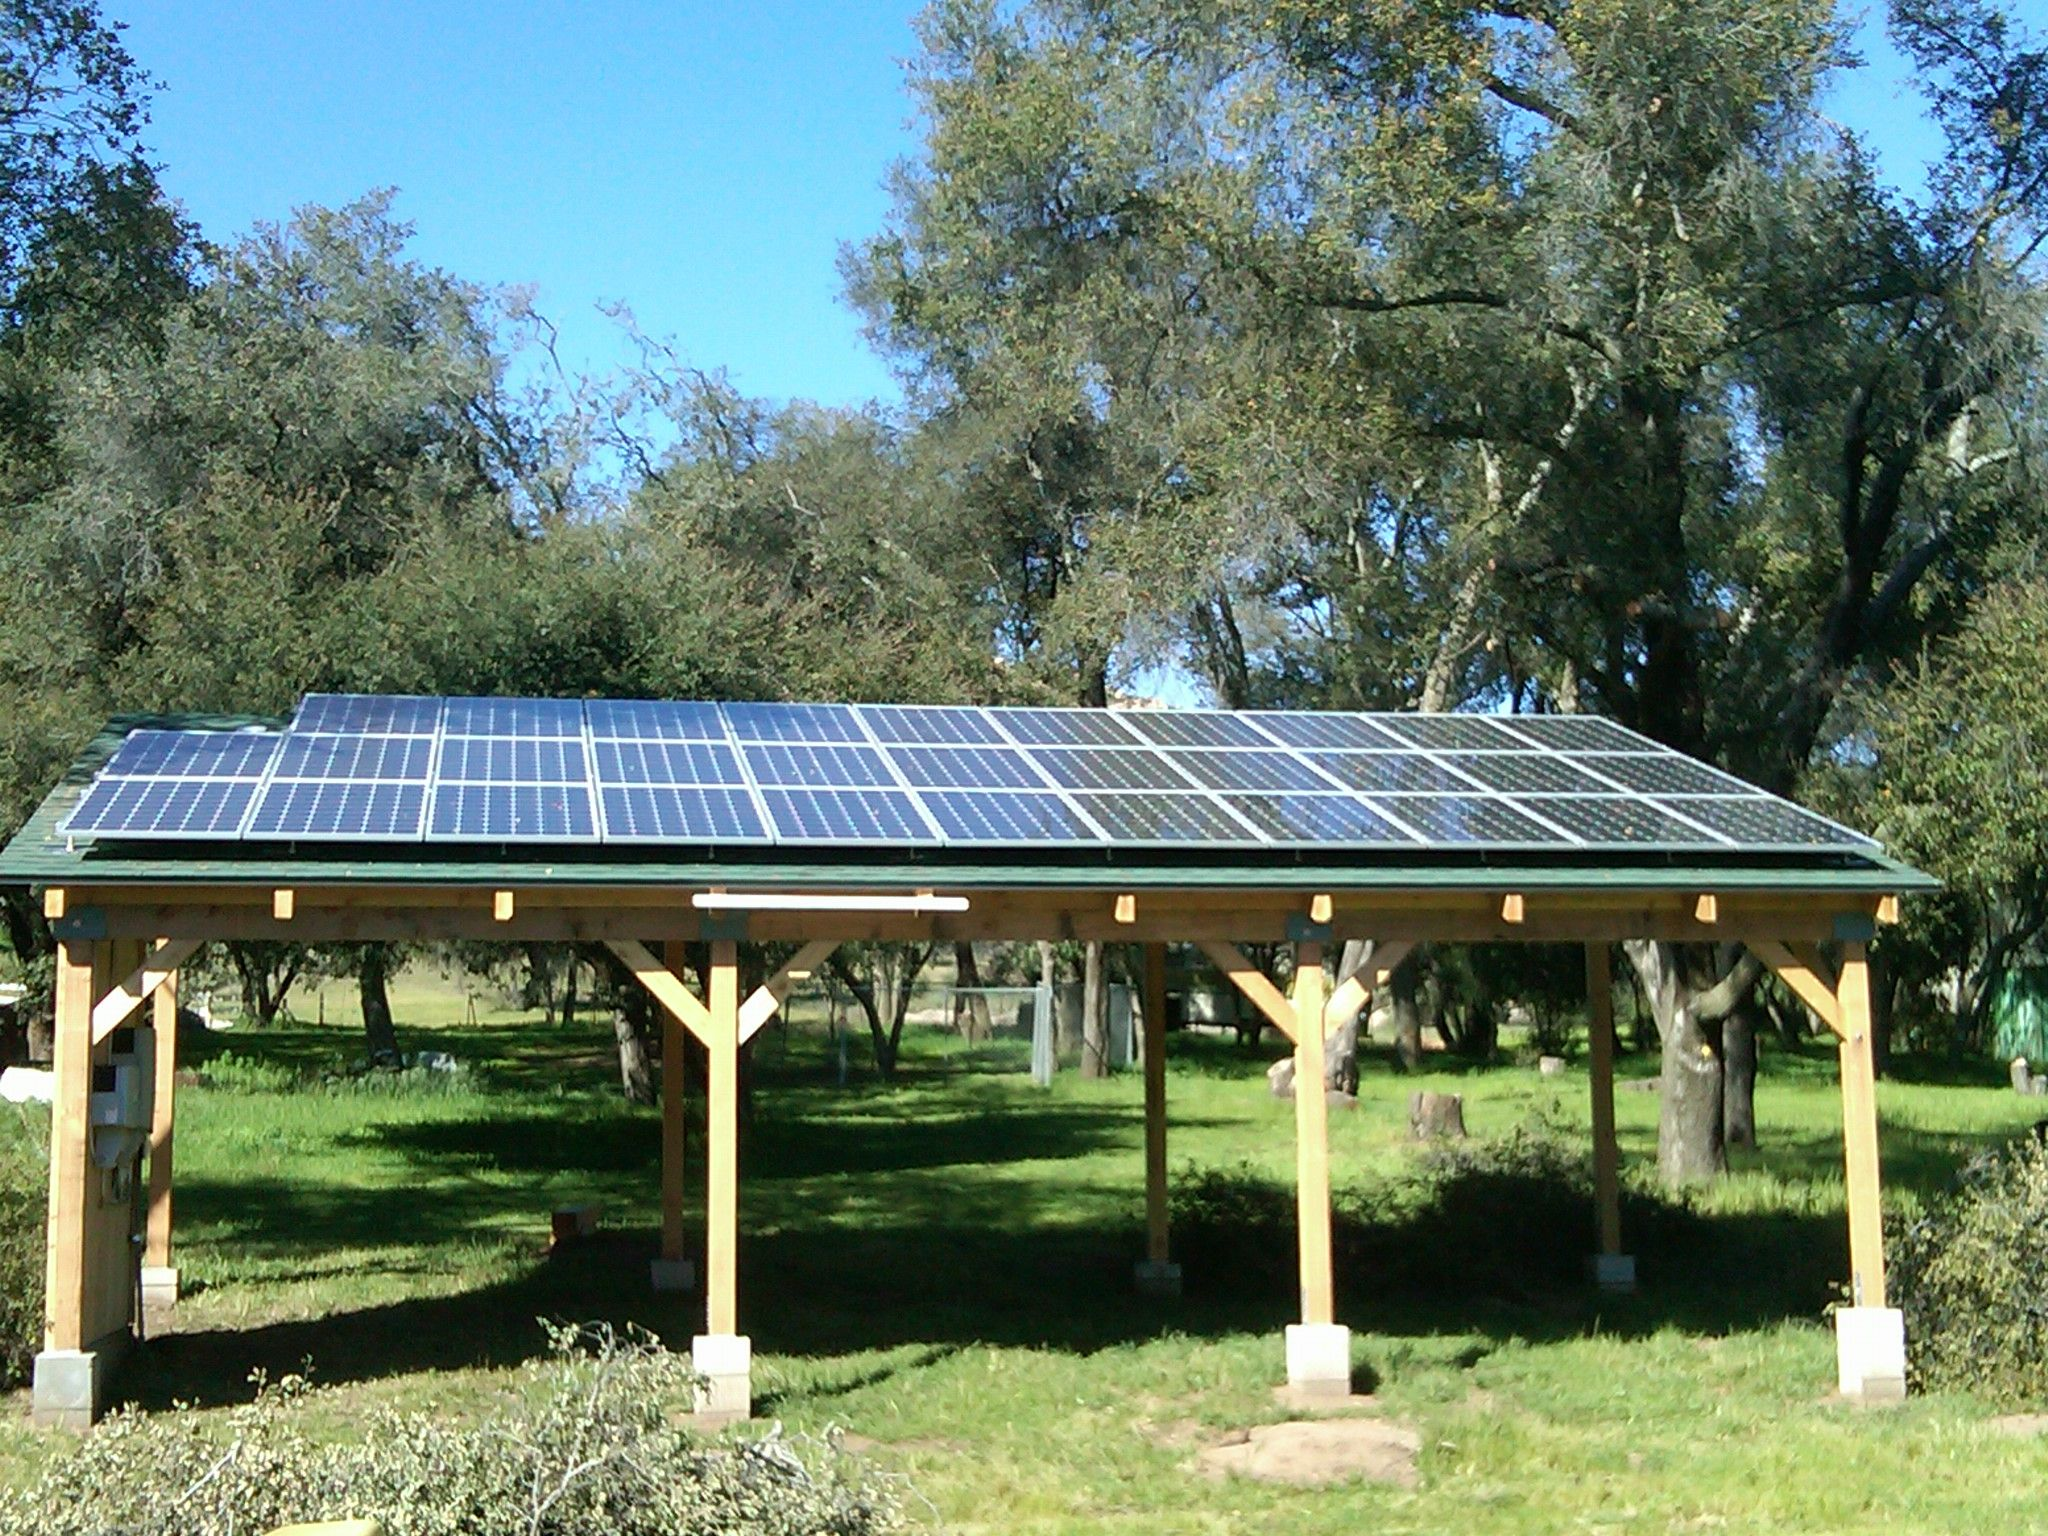 7.84 special carport mount solar PV system designed and